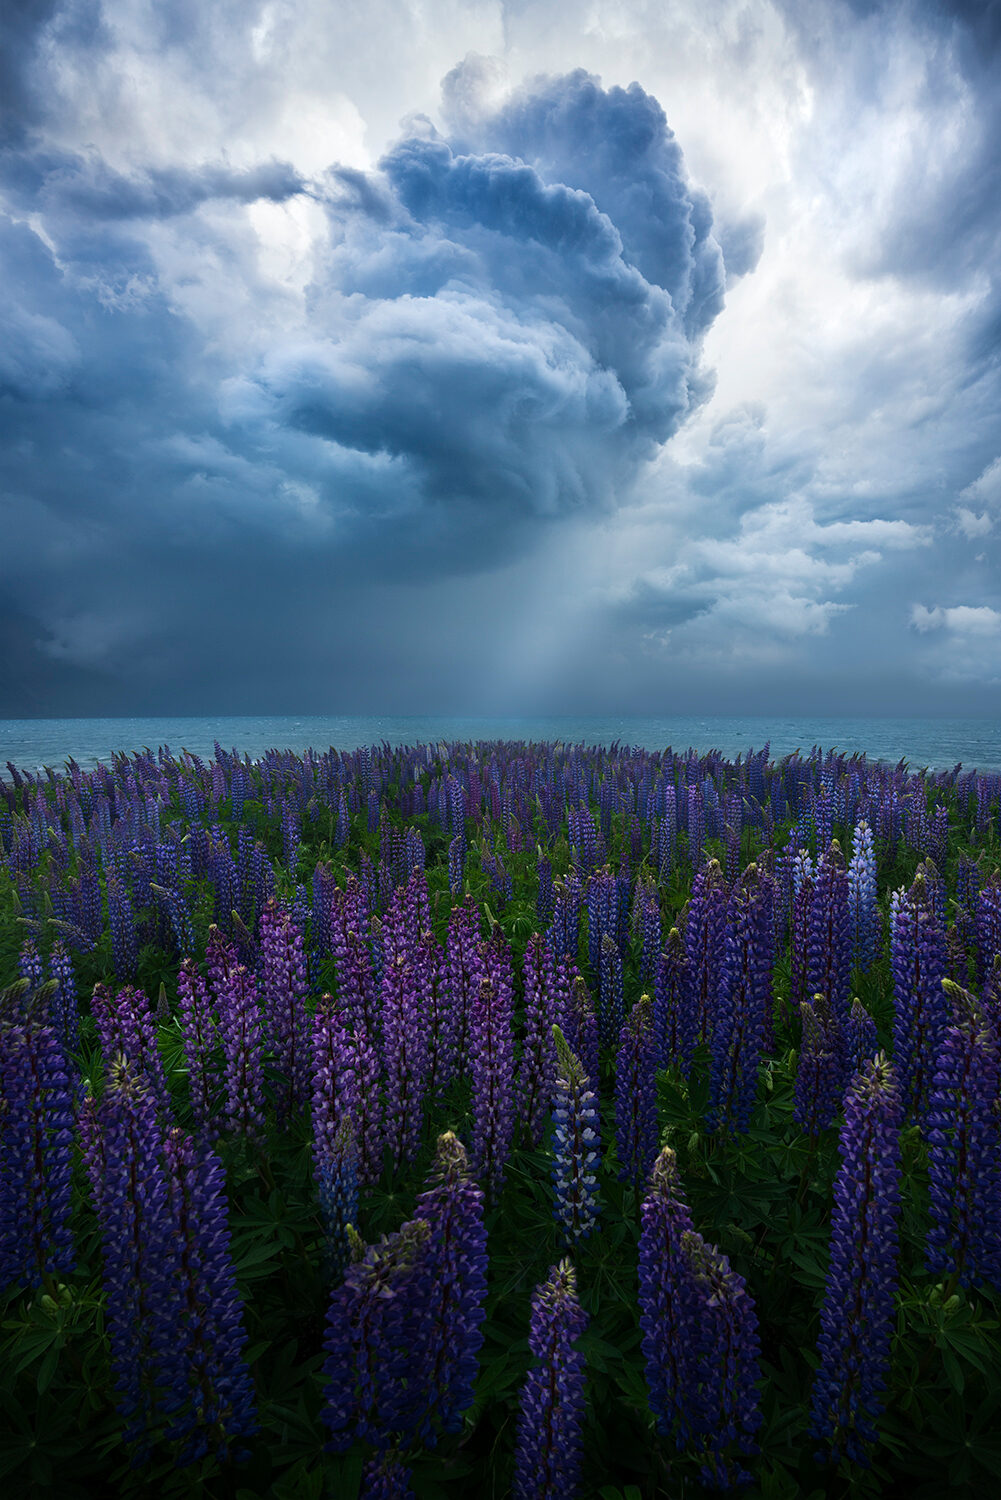 Summer storm clouds and lupin flowers